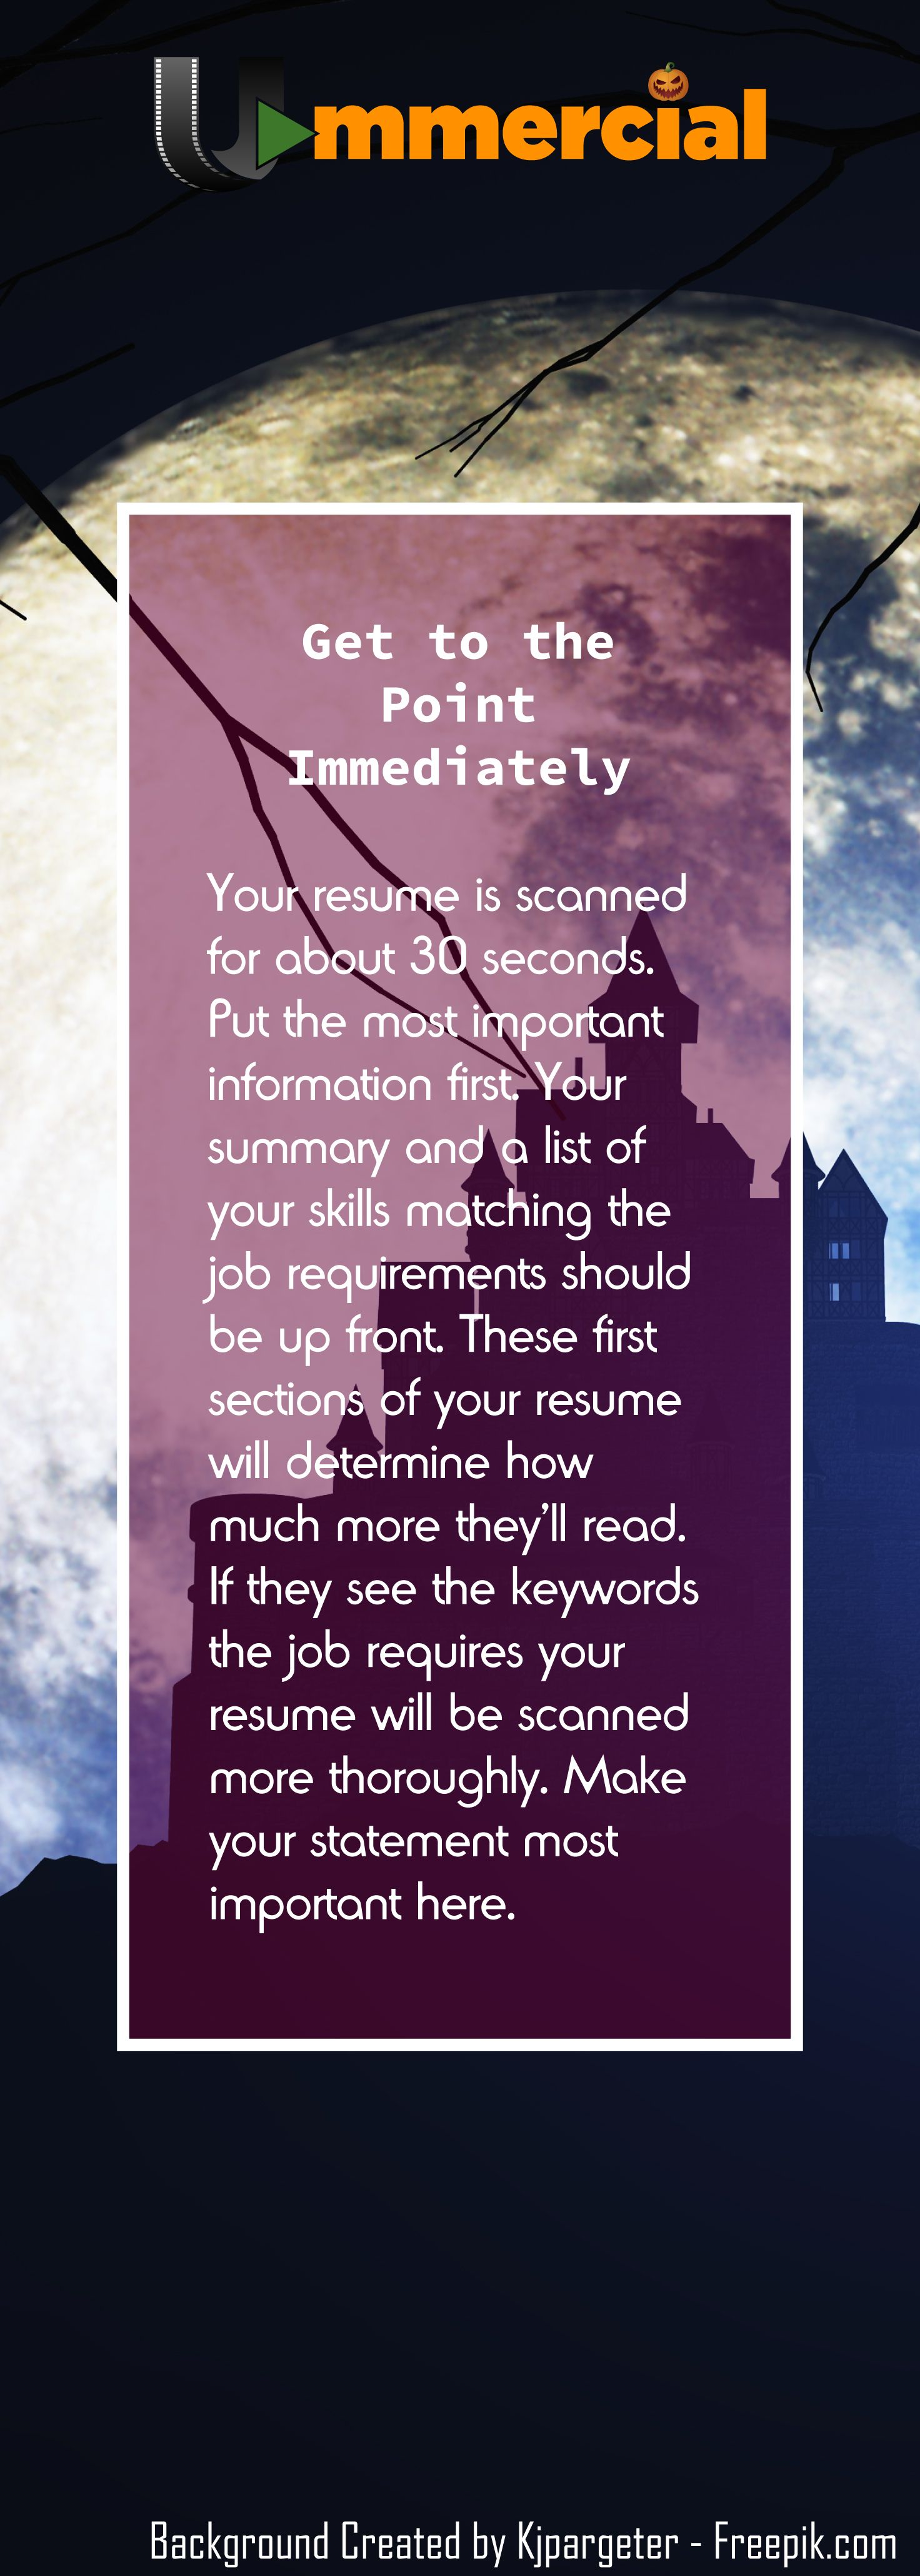 Pin by ummercial on get a job brochure sample video